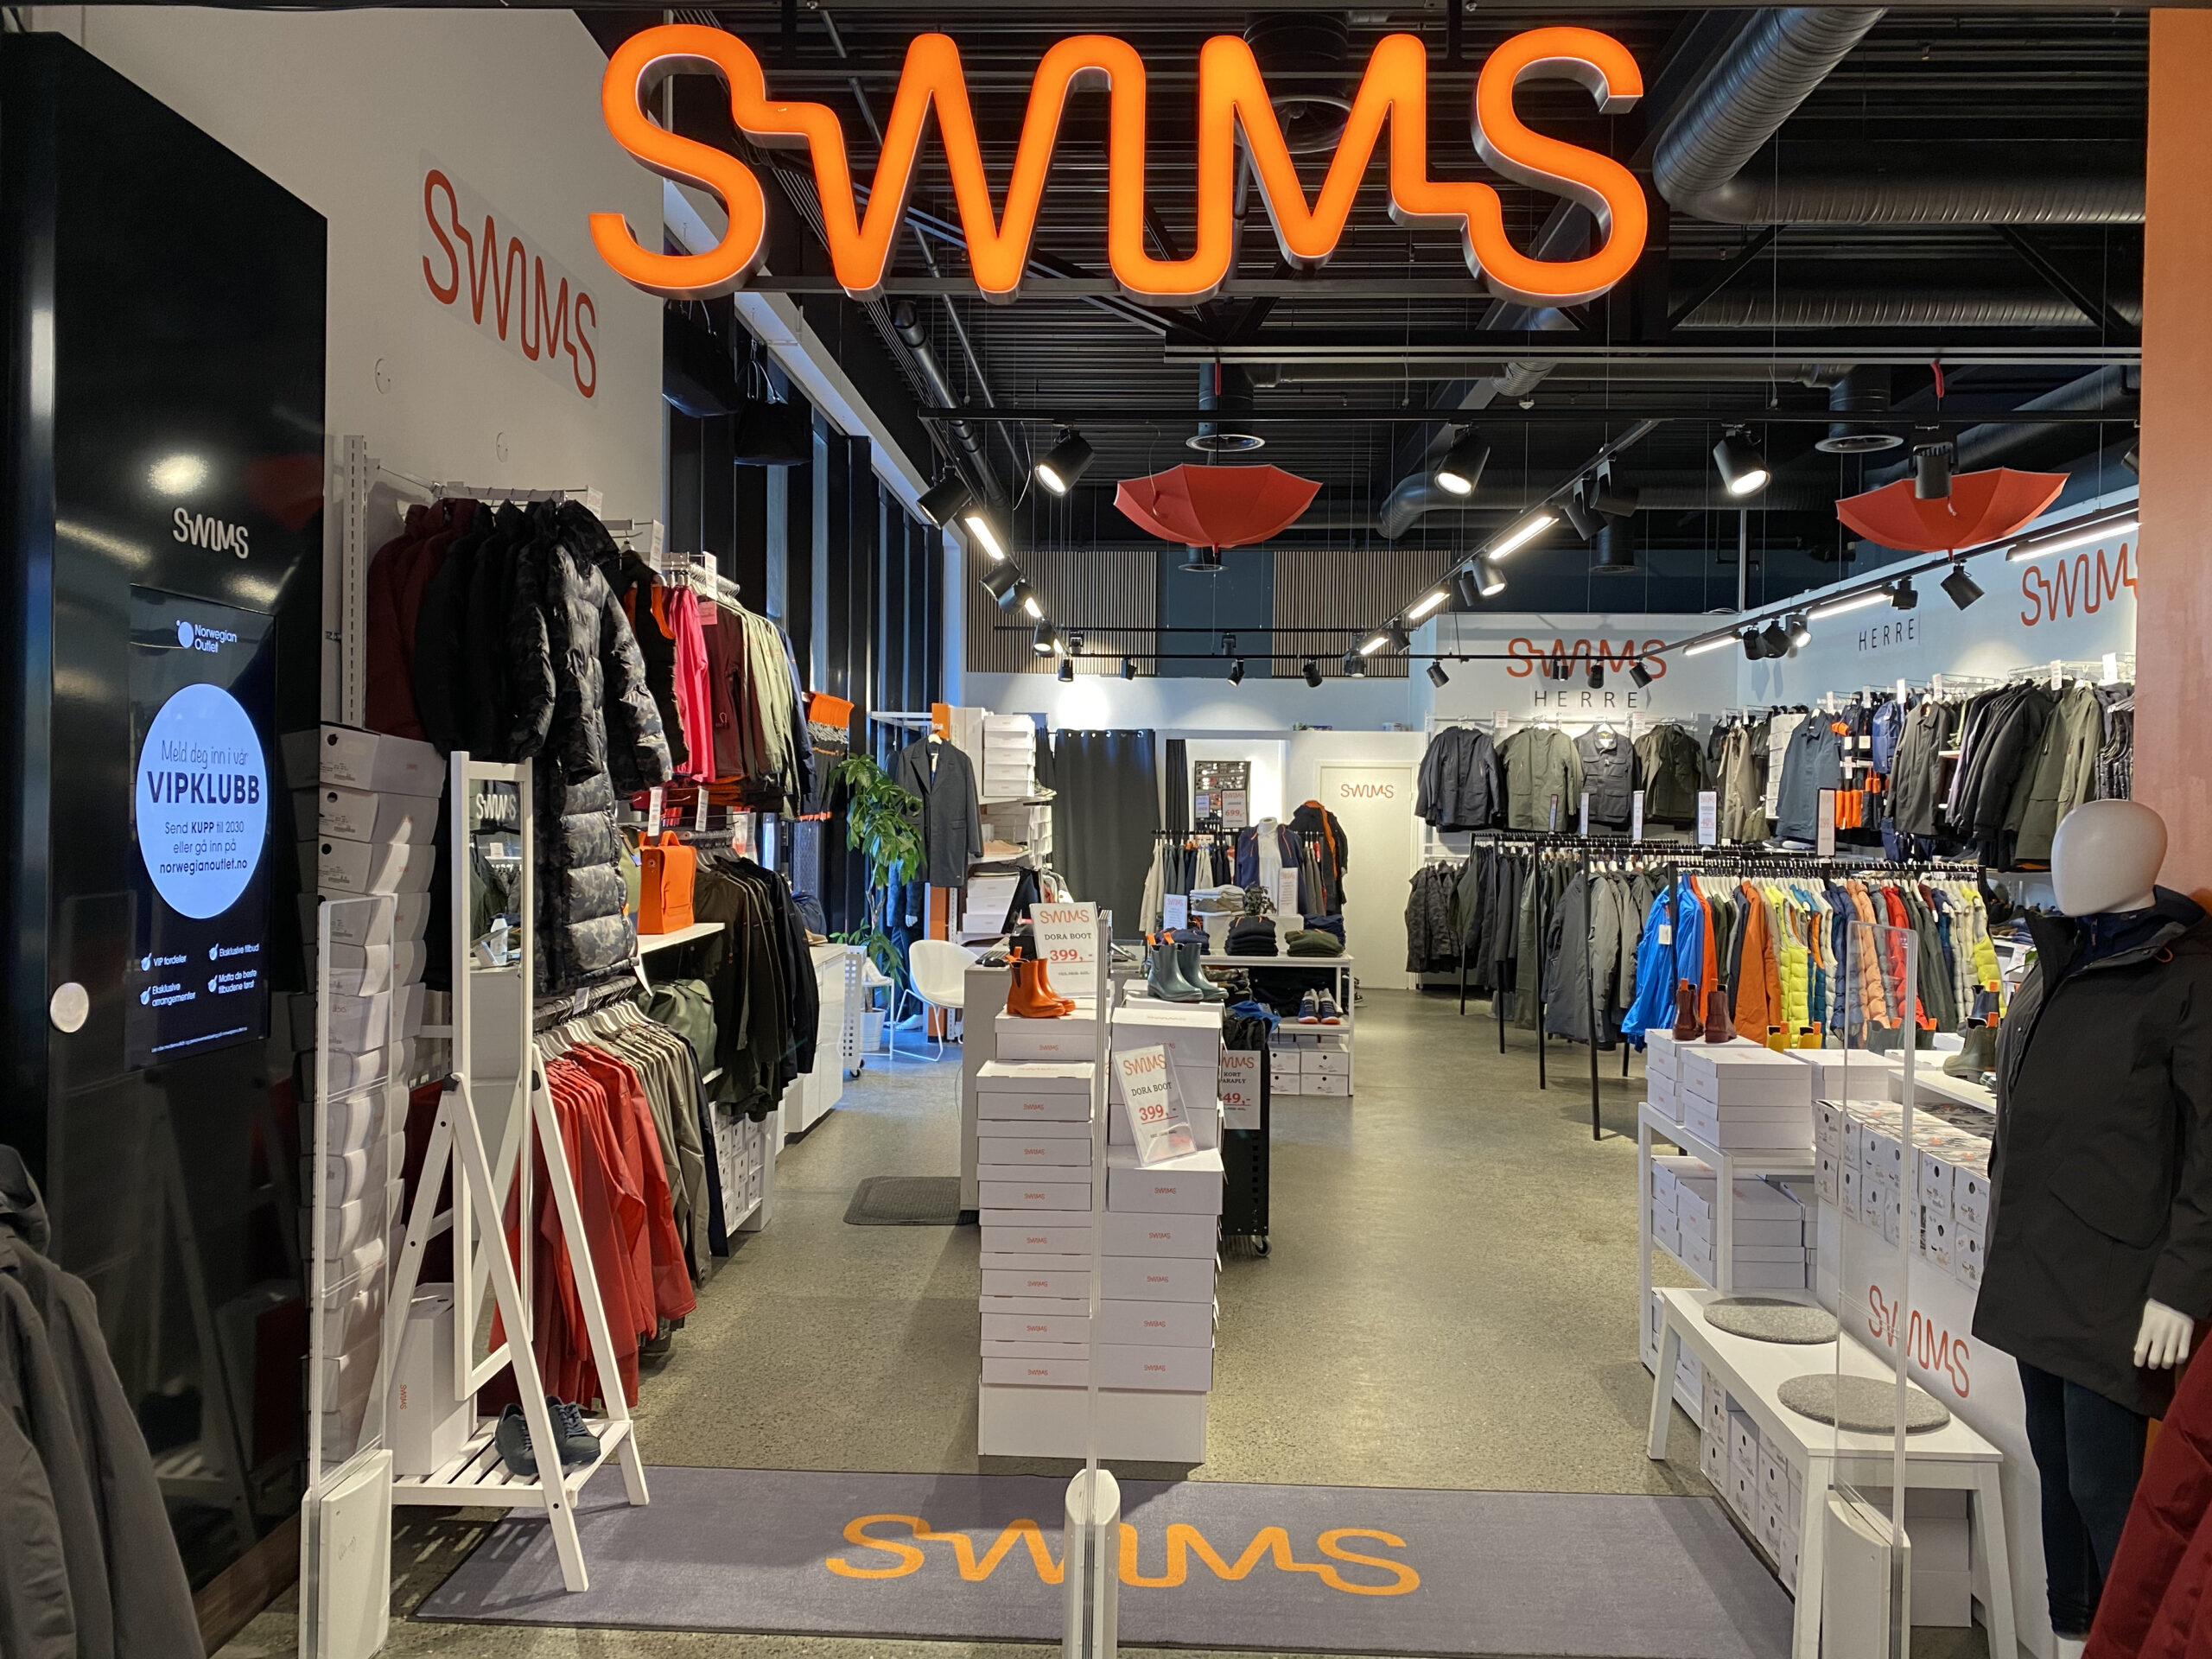 Swims storefront